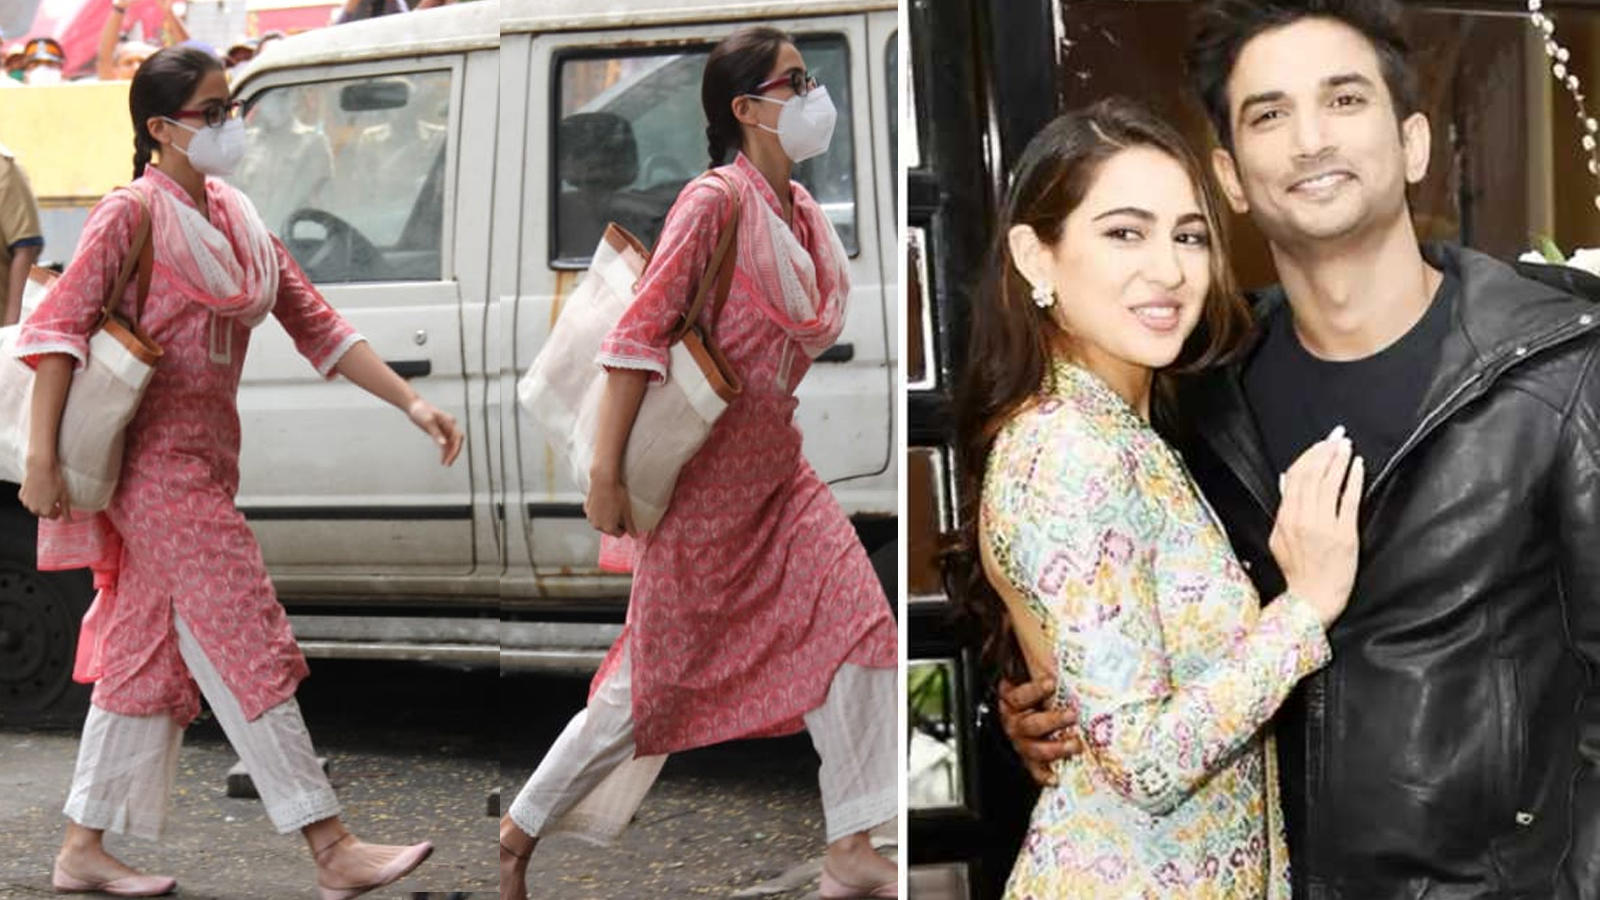 sara-ali-khans-interrogation-ncb-likely-to-ask-questions-like-for-how-long-was-she-in-a-relationship-with-sushant-singh-rajput-did-she-take-drugs-while-shooting-for-kedarnath-with-ssr